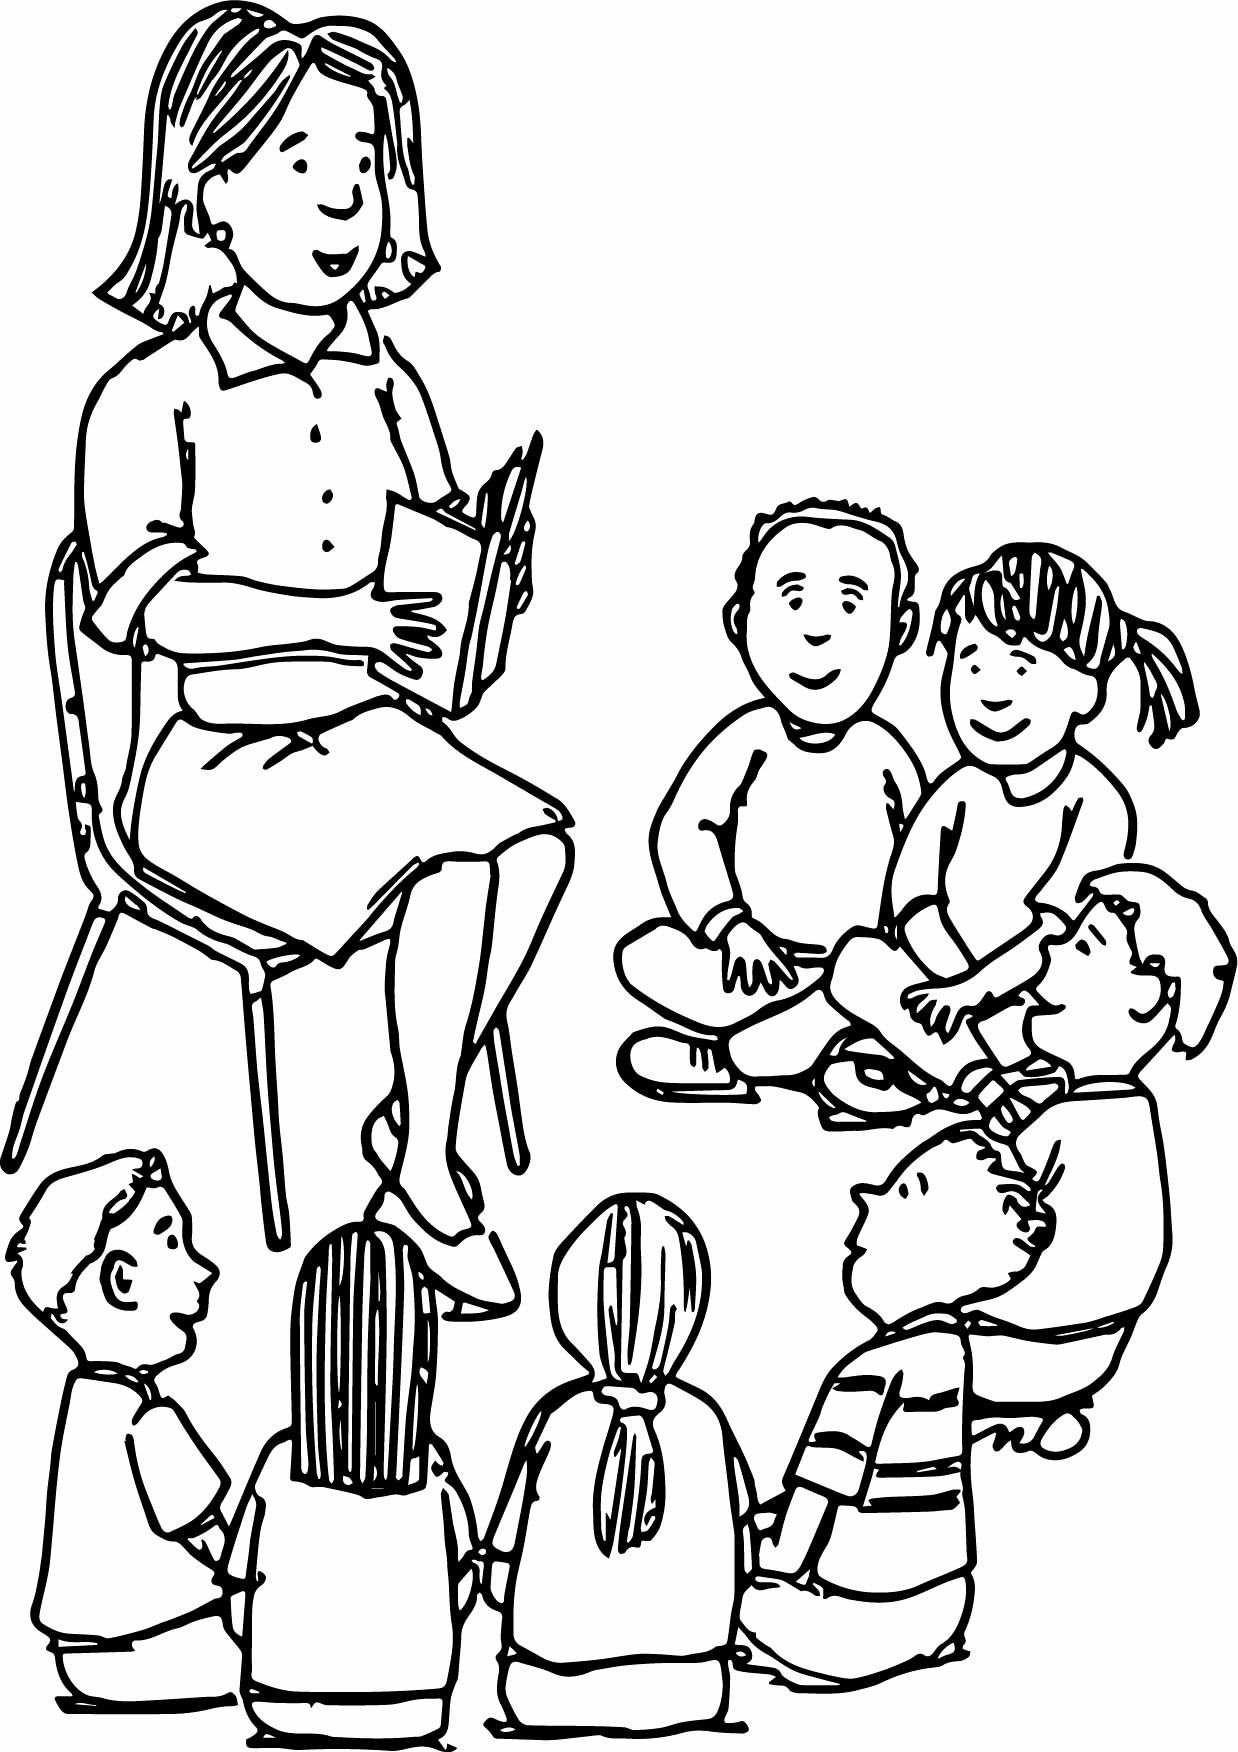 Popular Coloring Pages For Kids Lovely Teacher Coloring Pages Best Coloring Pages For Kids School Coloring Pages Toddler Coloring Book Coloring Books